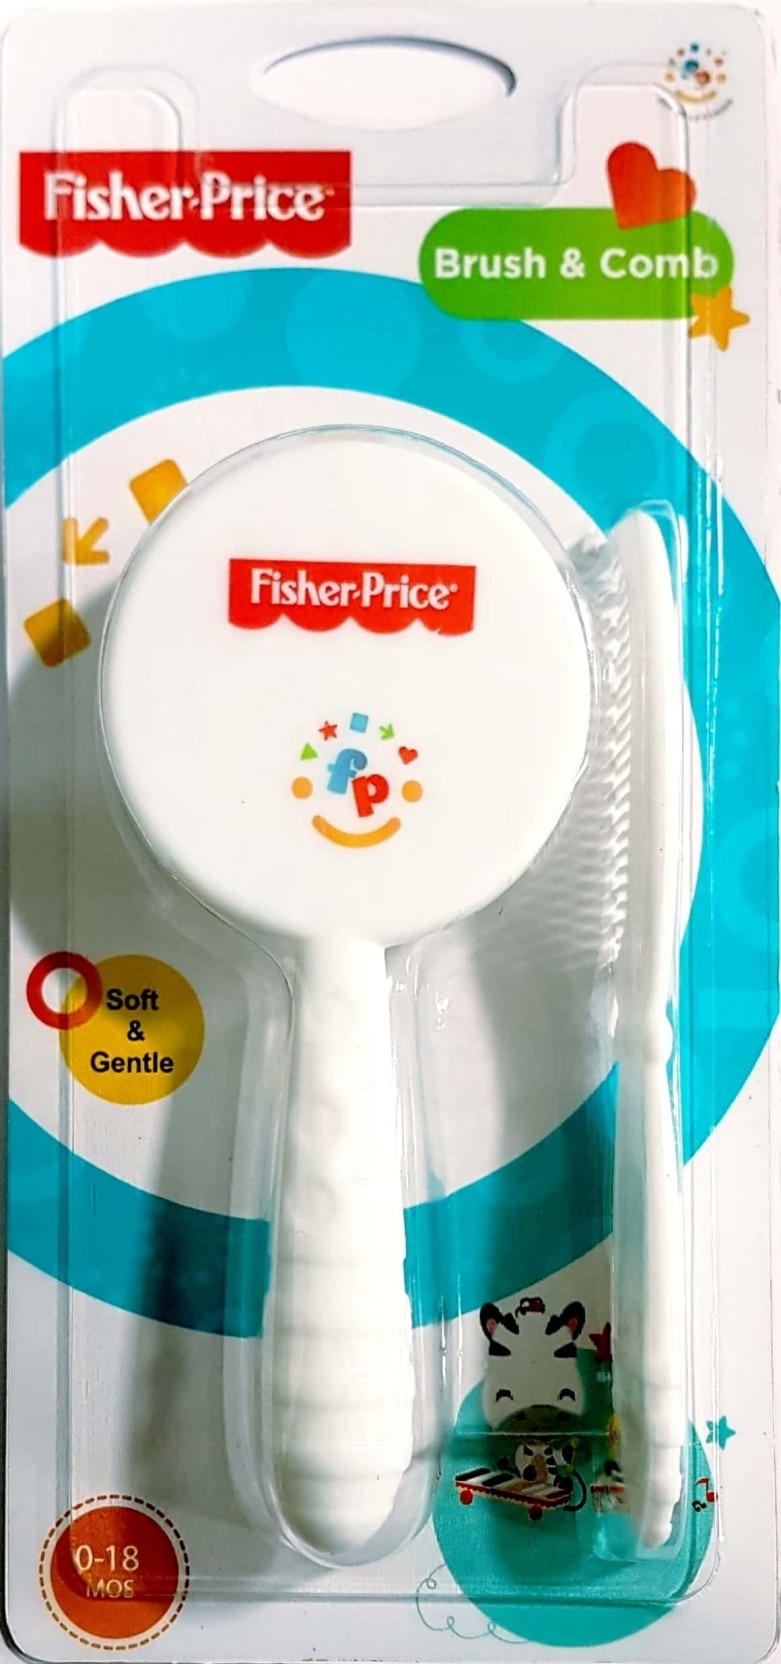 Fisher Price Ultracare Baby Hairbrush And Comb Set For Newborns Pigeon Brush Ampamp Toddlers Share